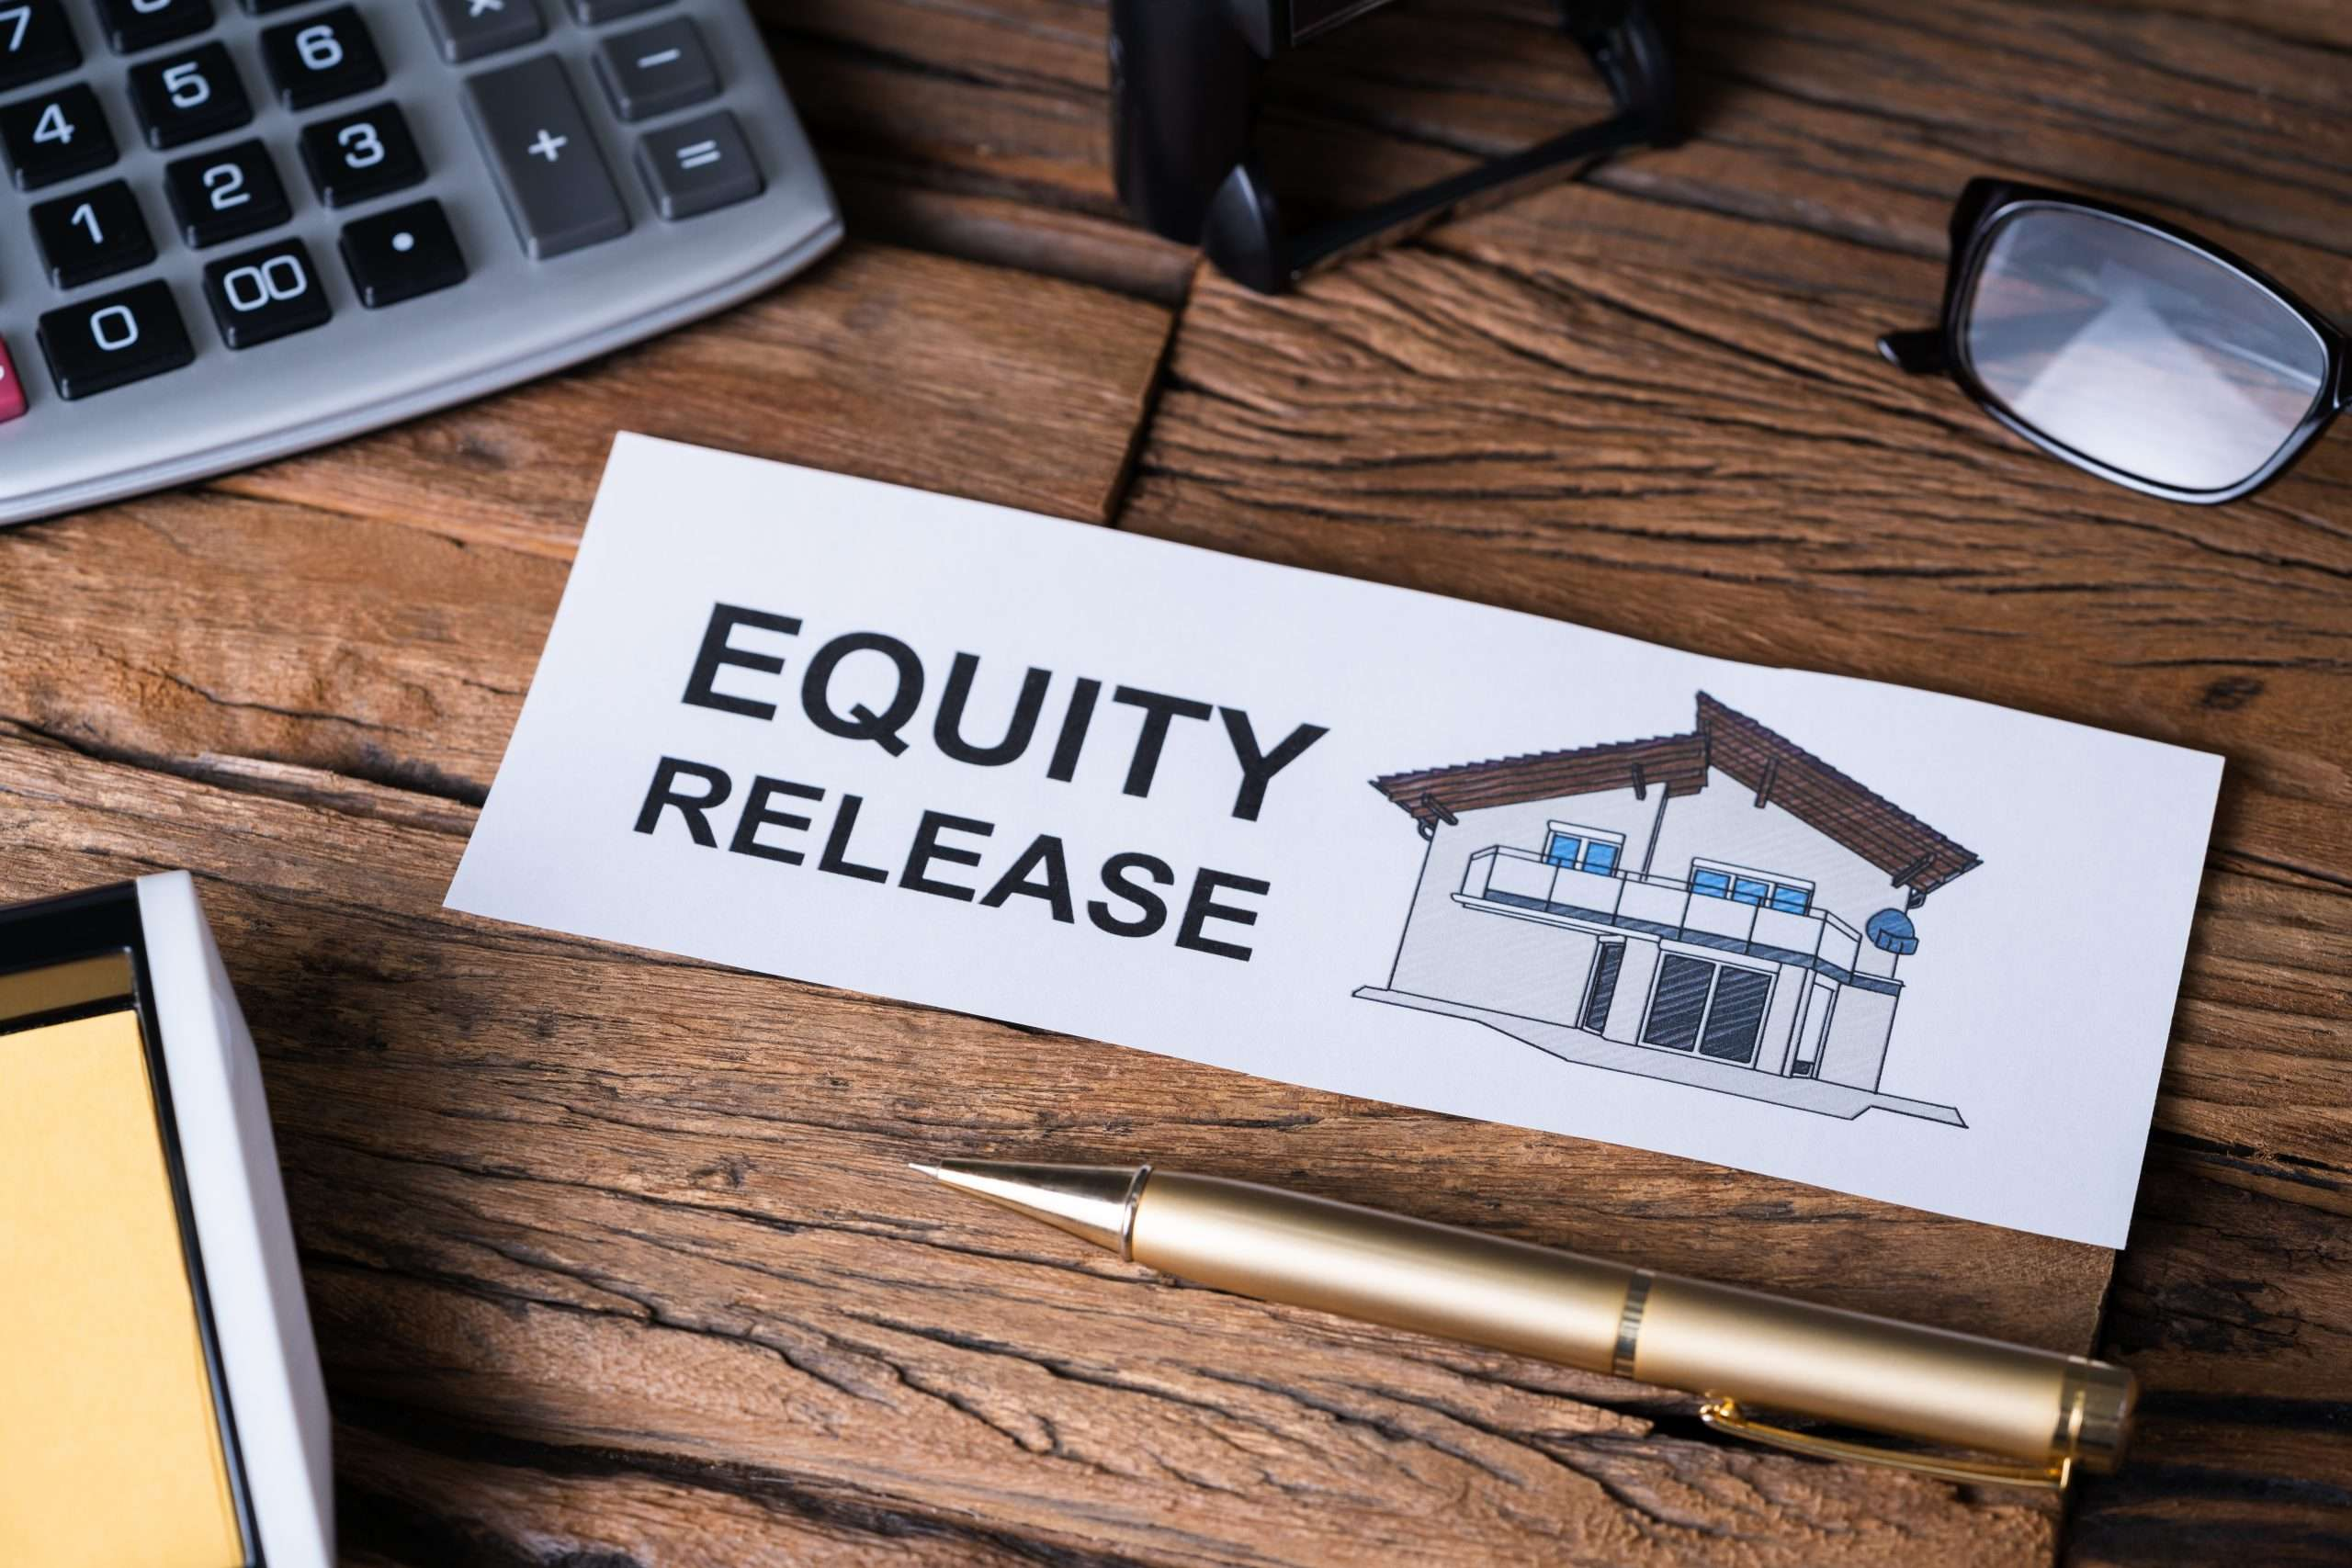 Equity release: data indicates new priorities for applicants